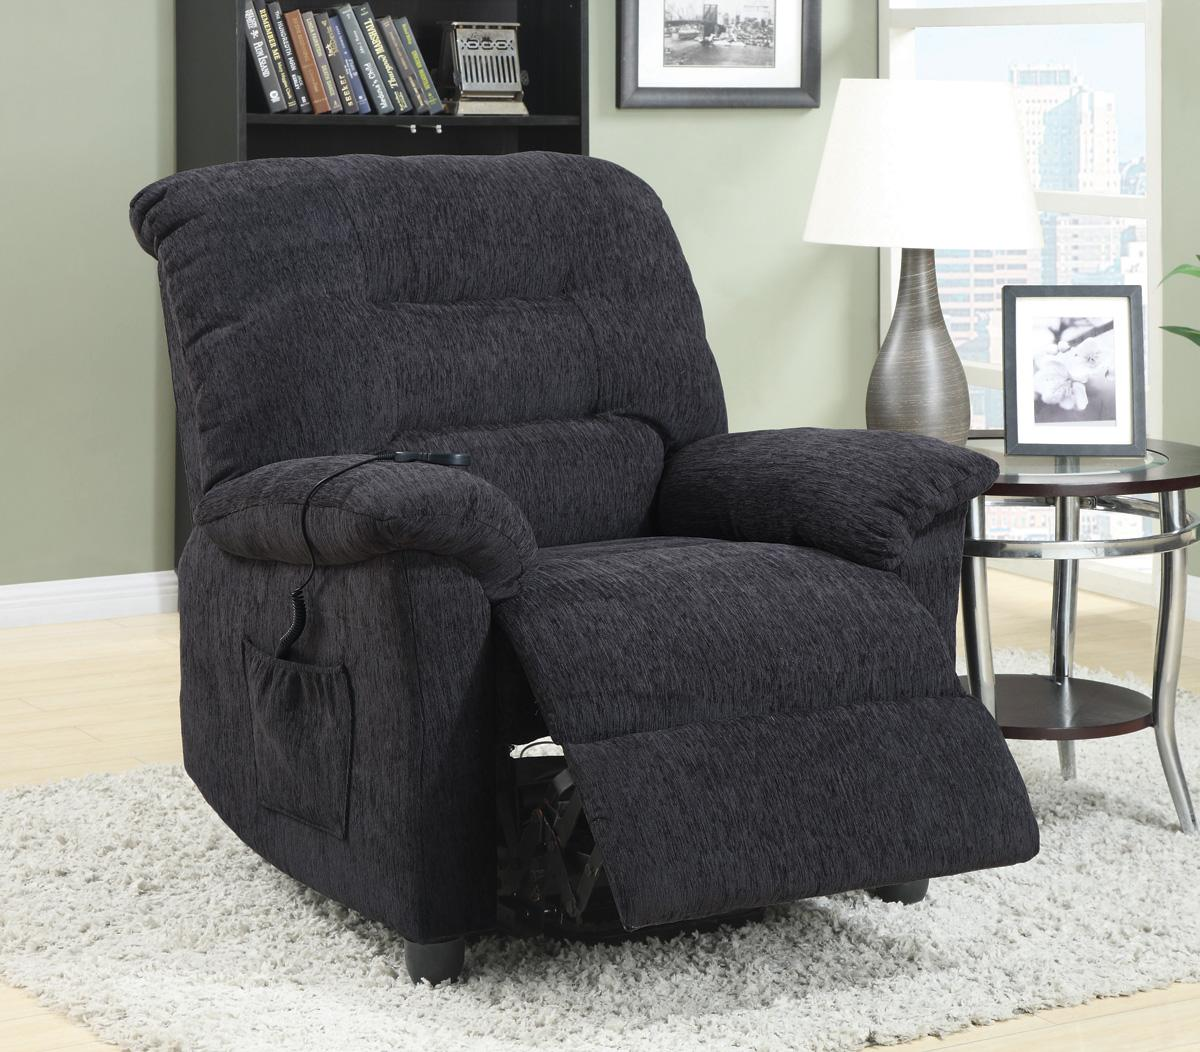 Best Priced Furniture: Recliners